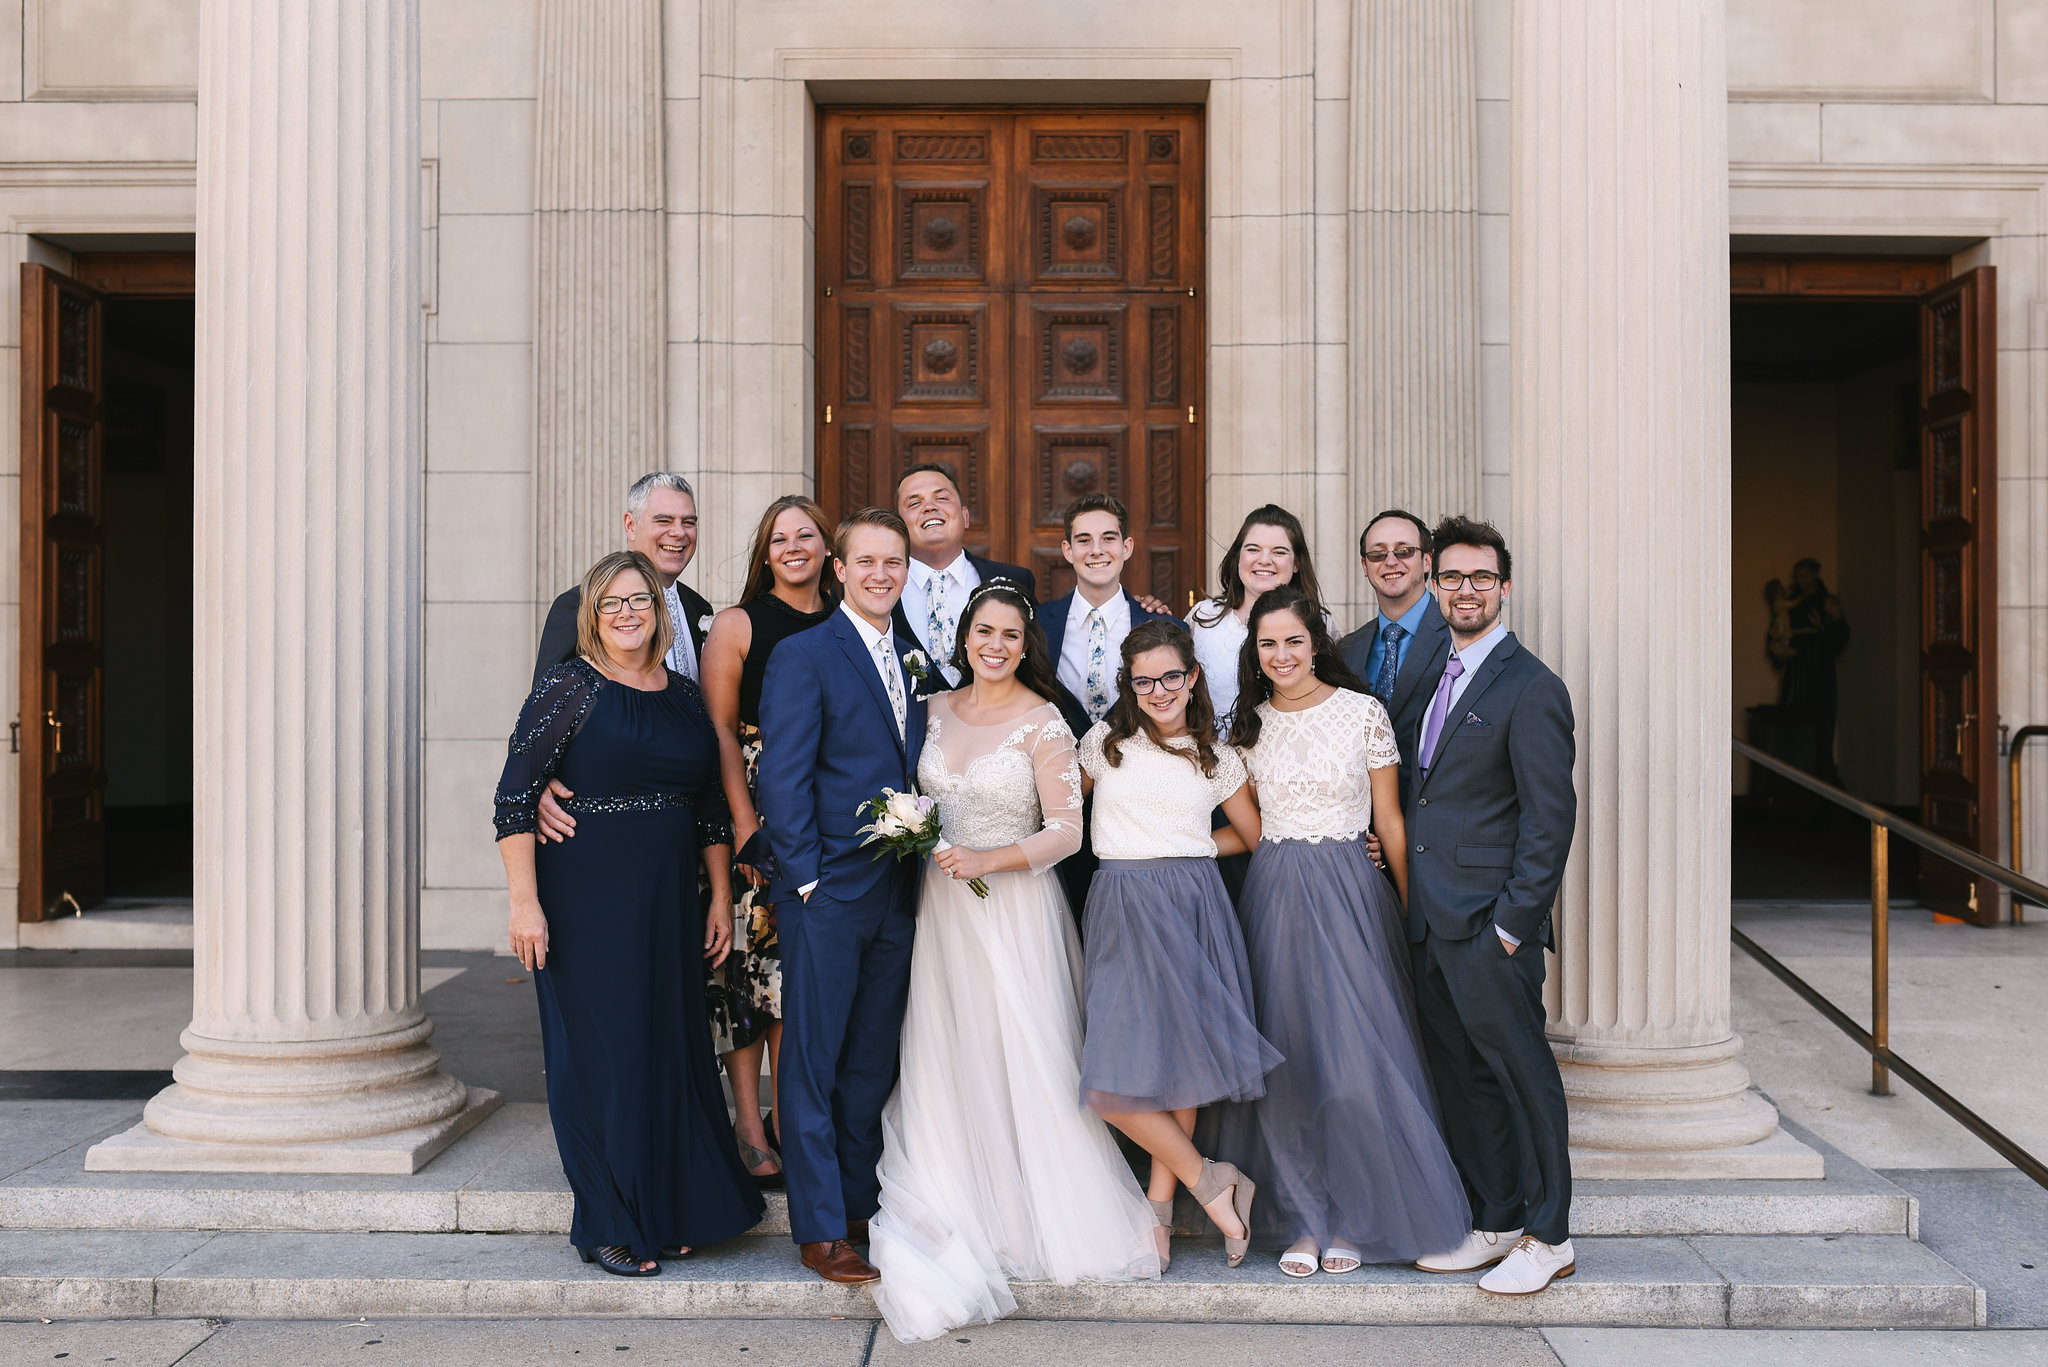 Baltimore, Canton, Church Wedding, Modern, Outdoors, Maryland Wedding Photographer, Romantic, Classic, St. Casimir Church, Portrait of bride and groom with family, white and purple roses